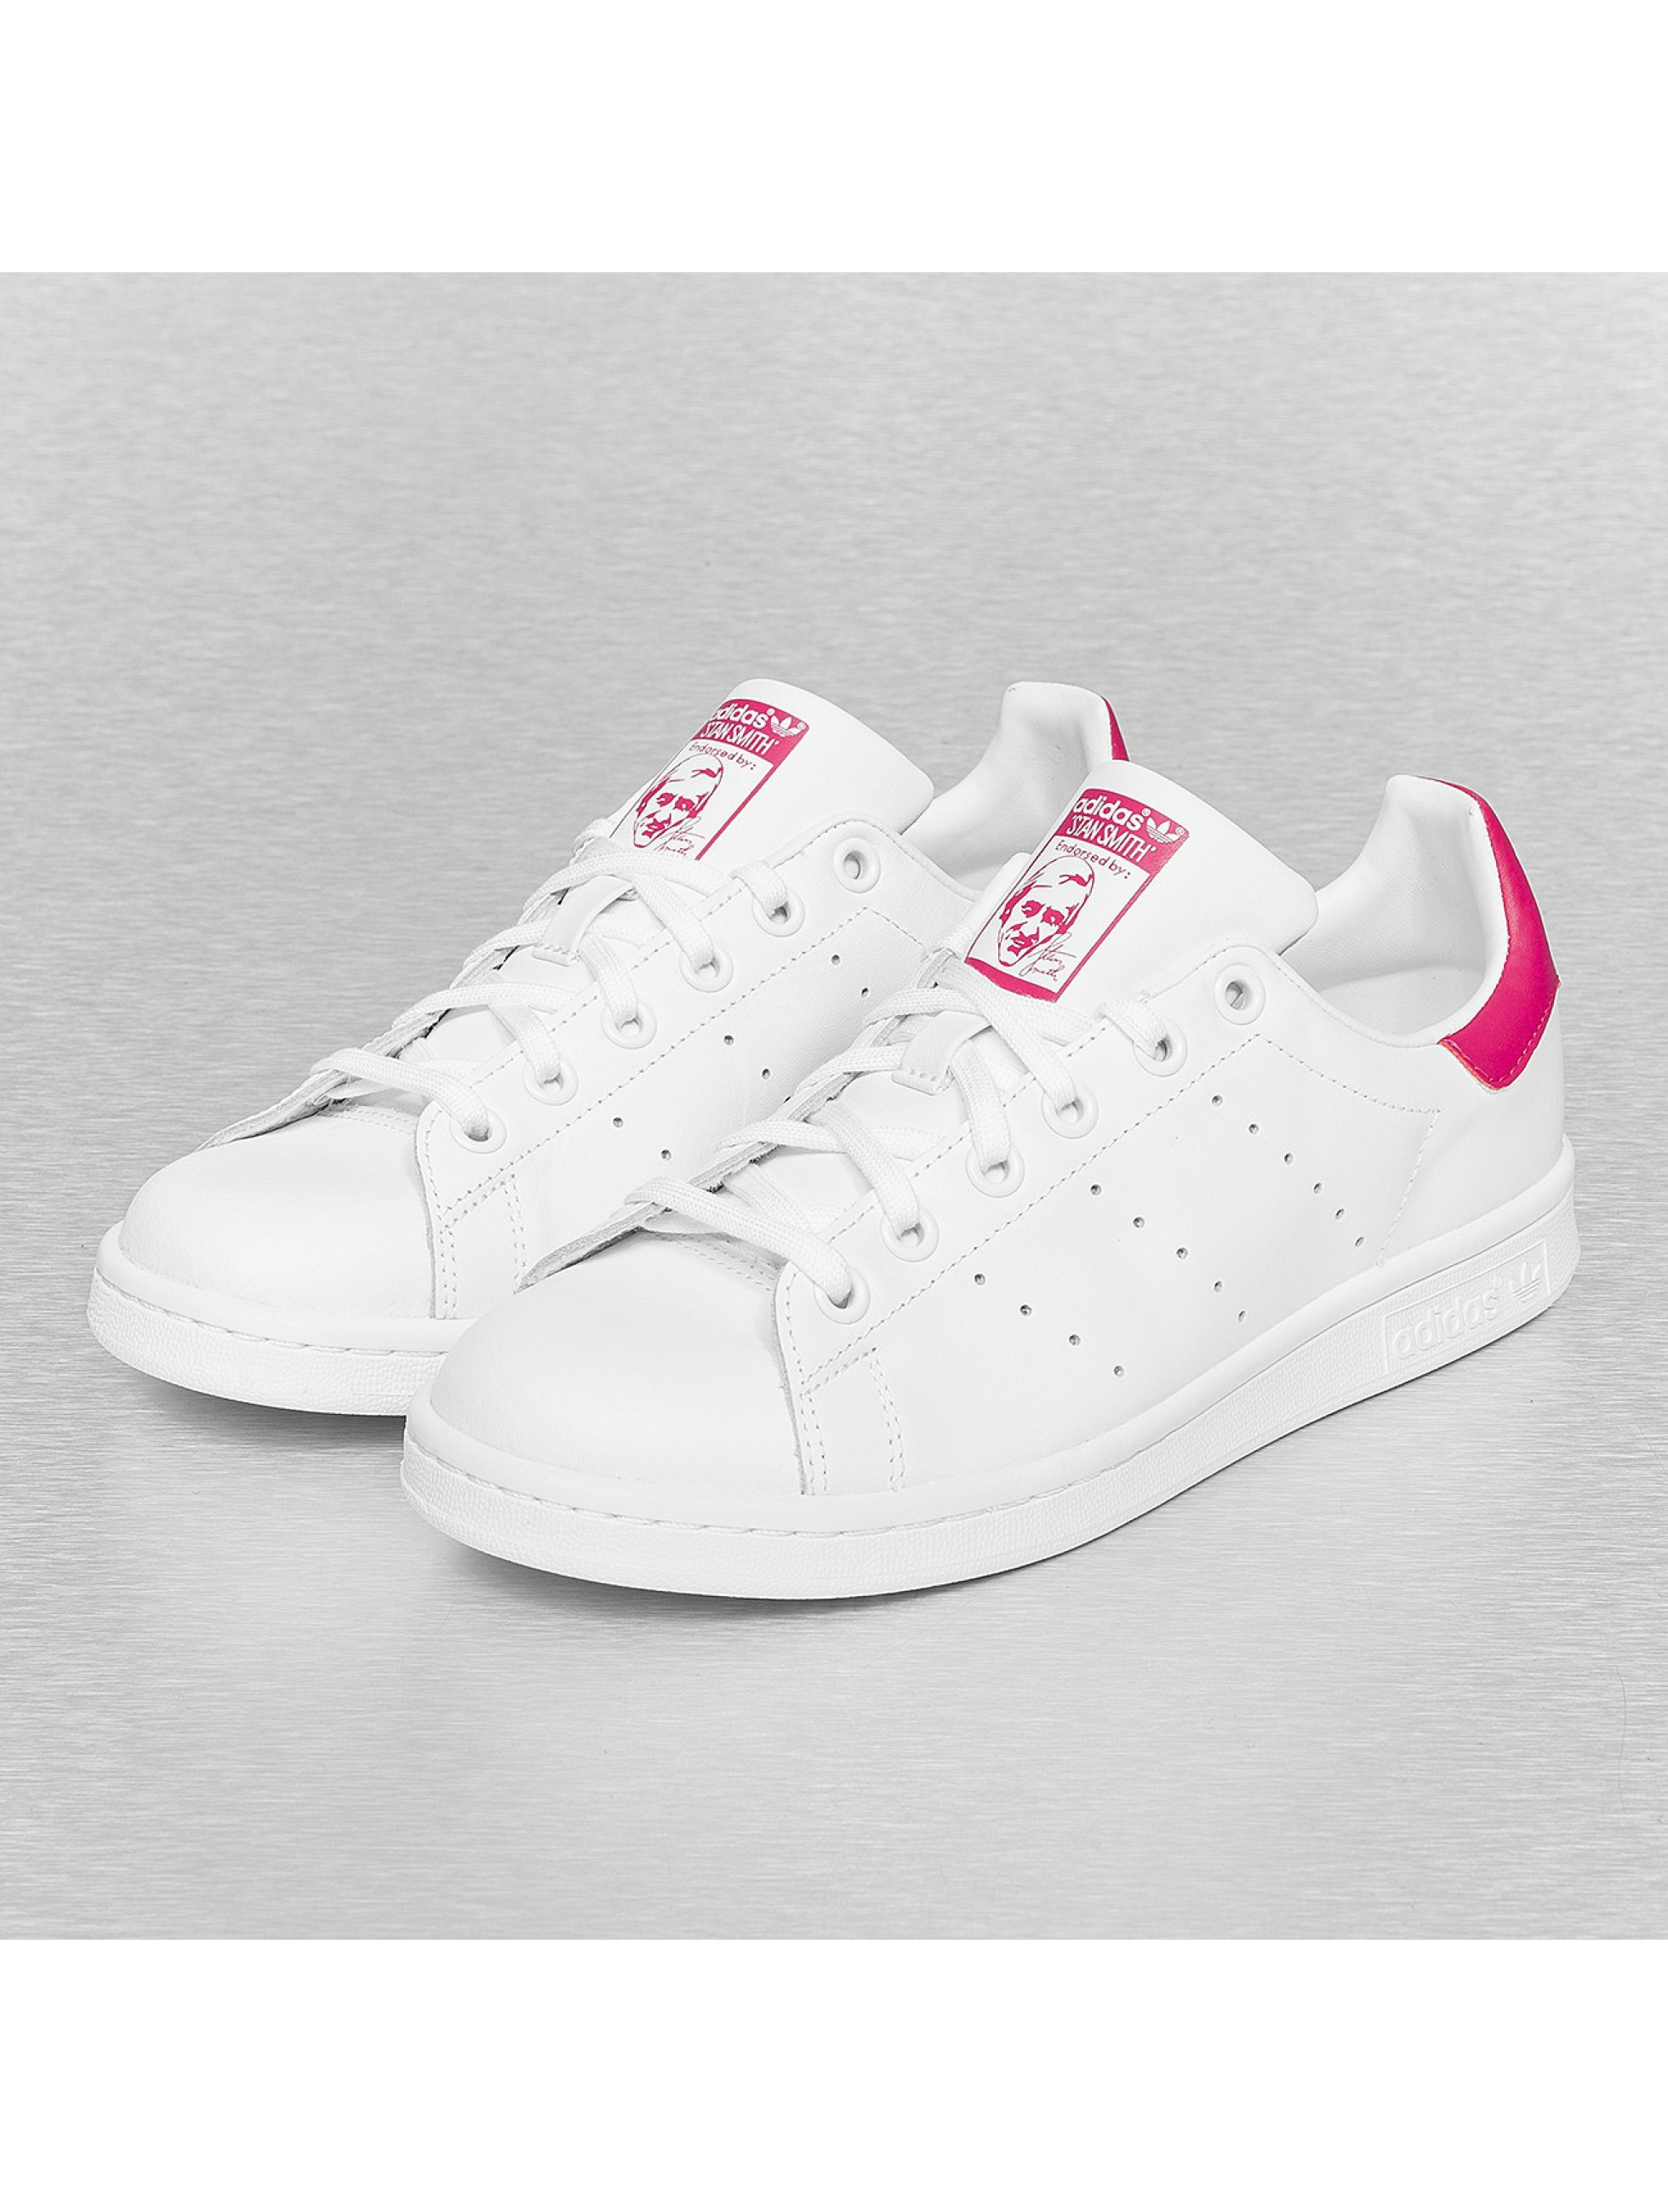 Stan Smith Adidas Schoenen